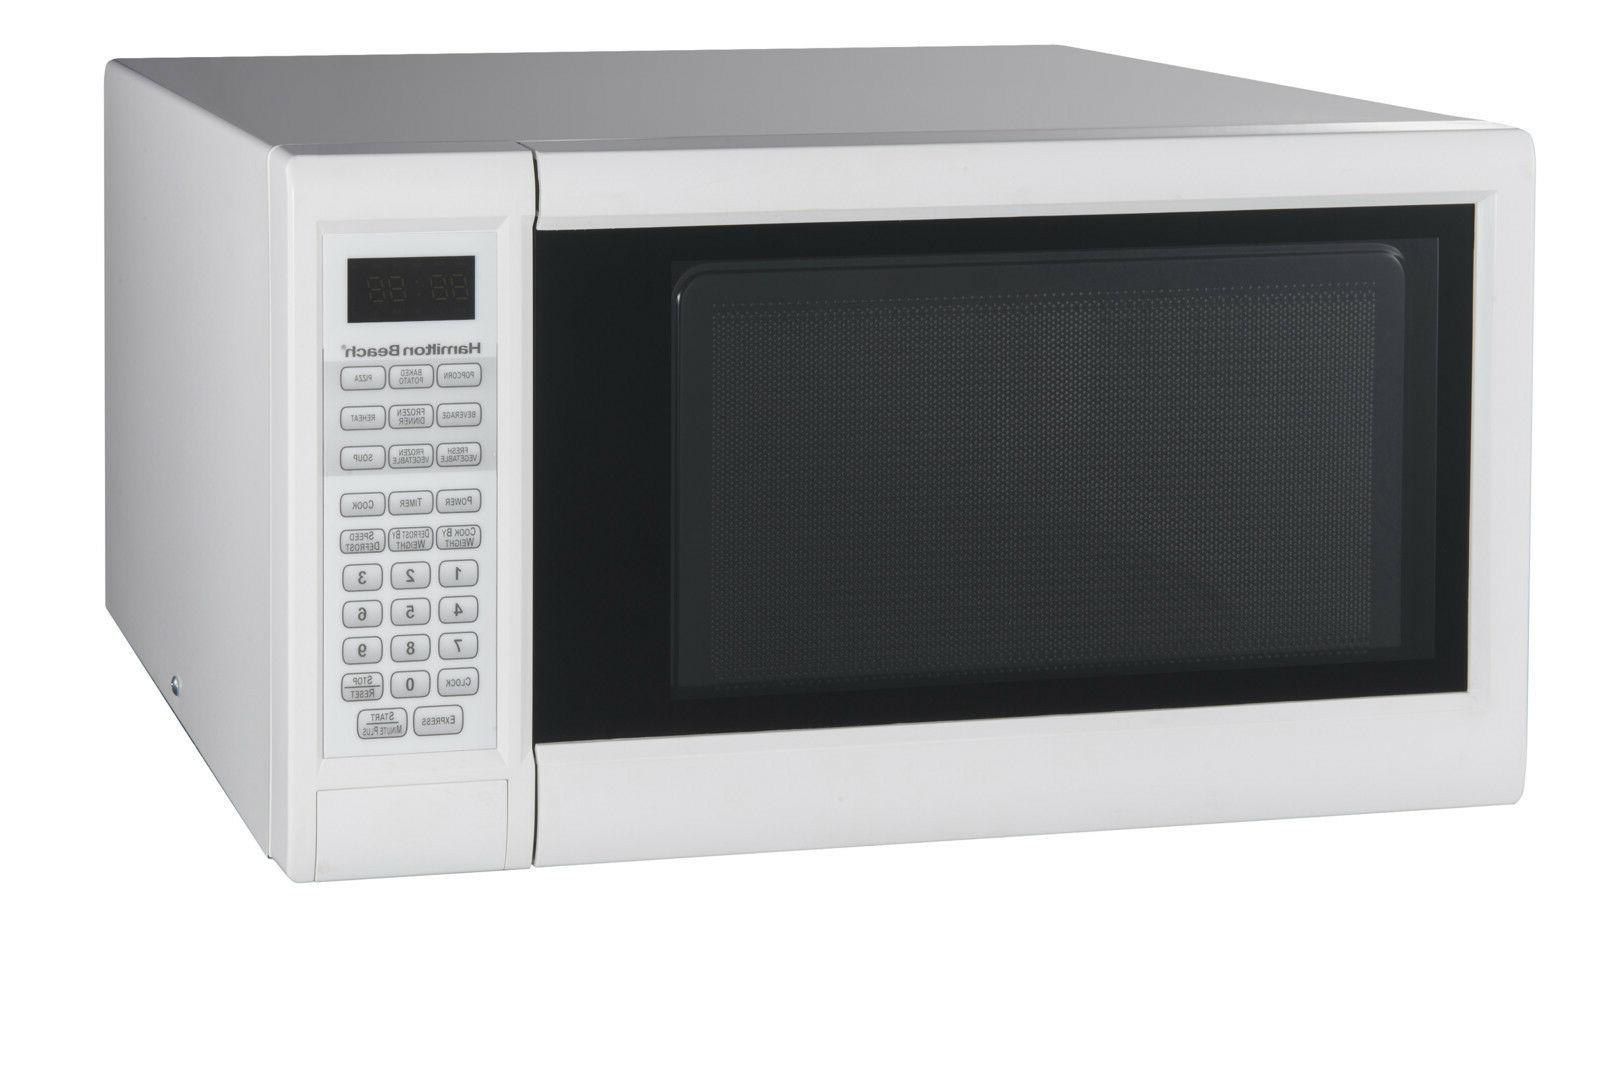 Hamilton Beach 1.3 Digital Kitchen Microwave Oven Cooking Cook